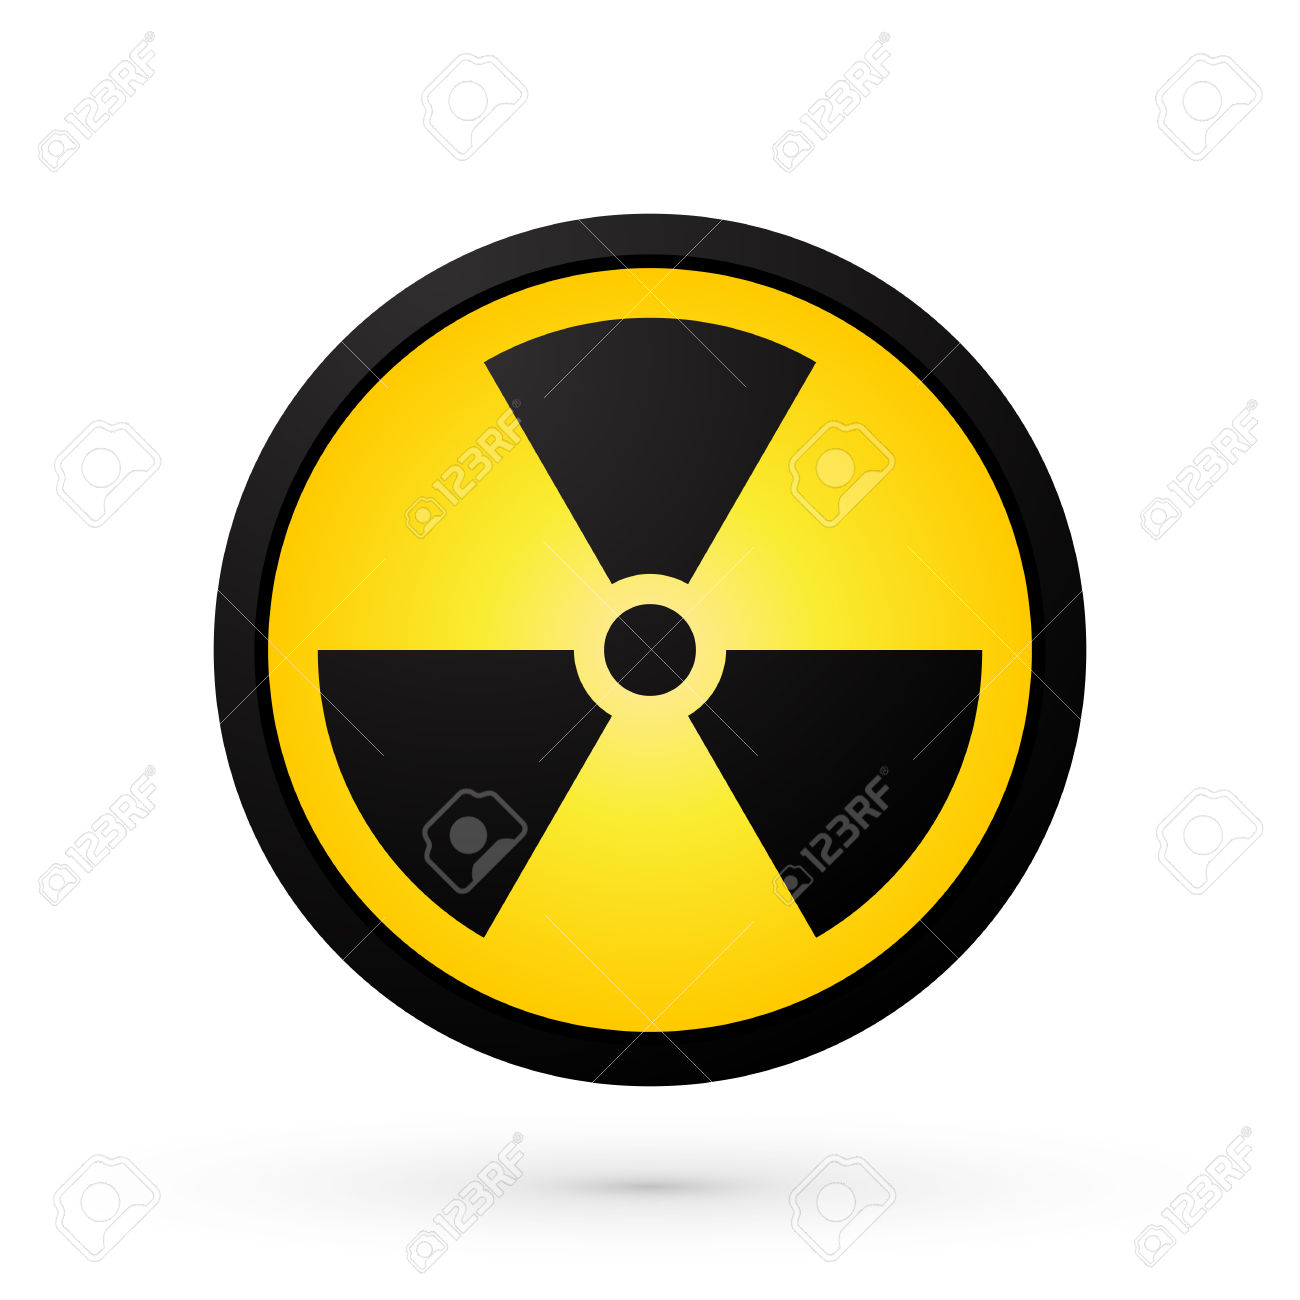 Simple Radioactivity Symbol Royalty Free Cliparts, Vectors, And.